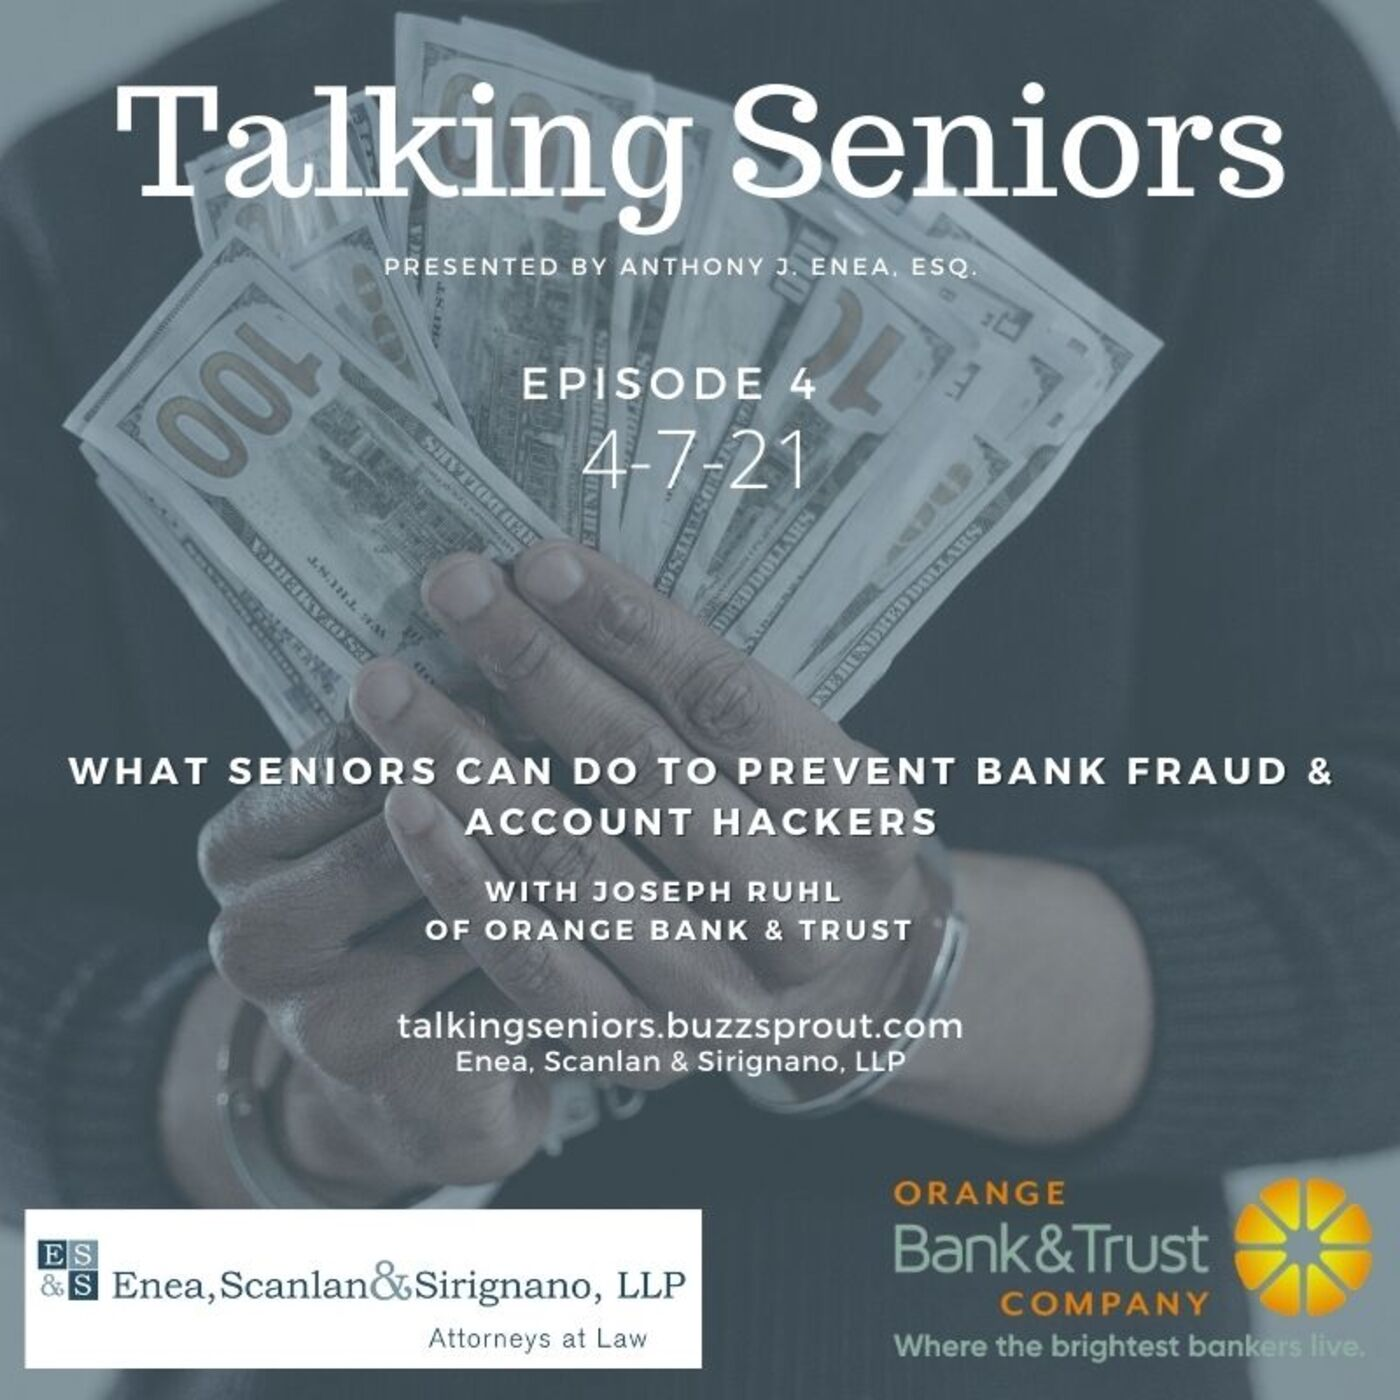 Episode 4: What Seniors Can Do to Prevent Bank Fraud & Account Hackers